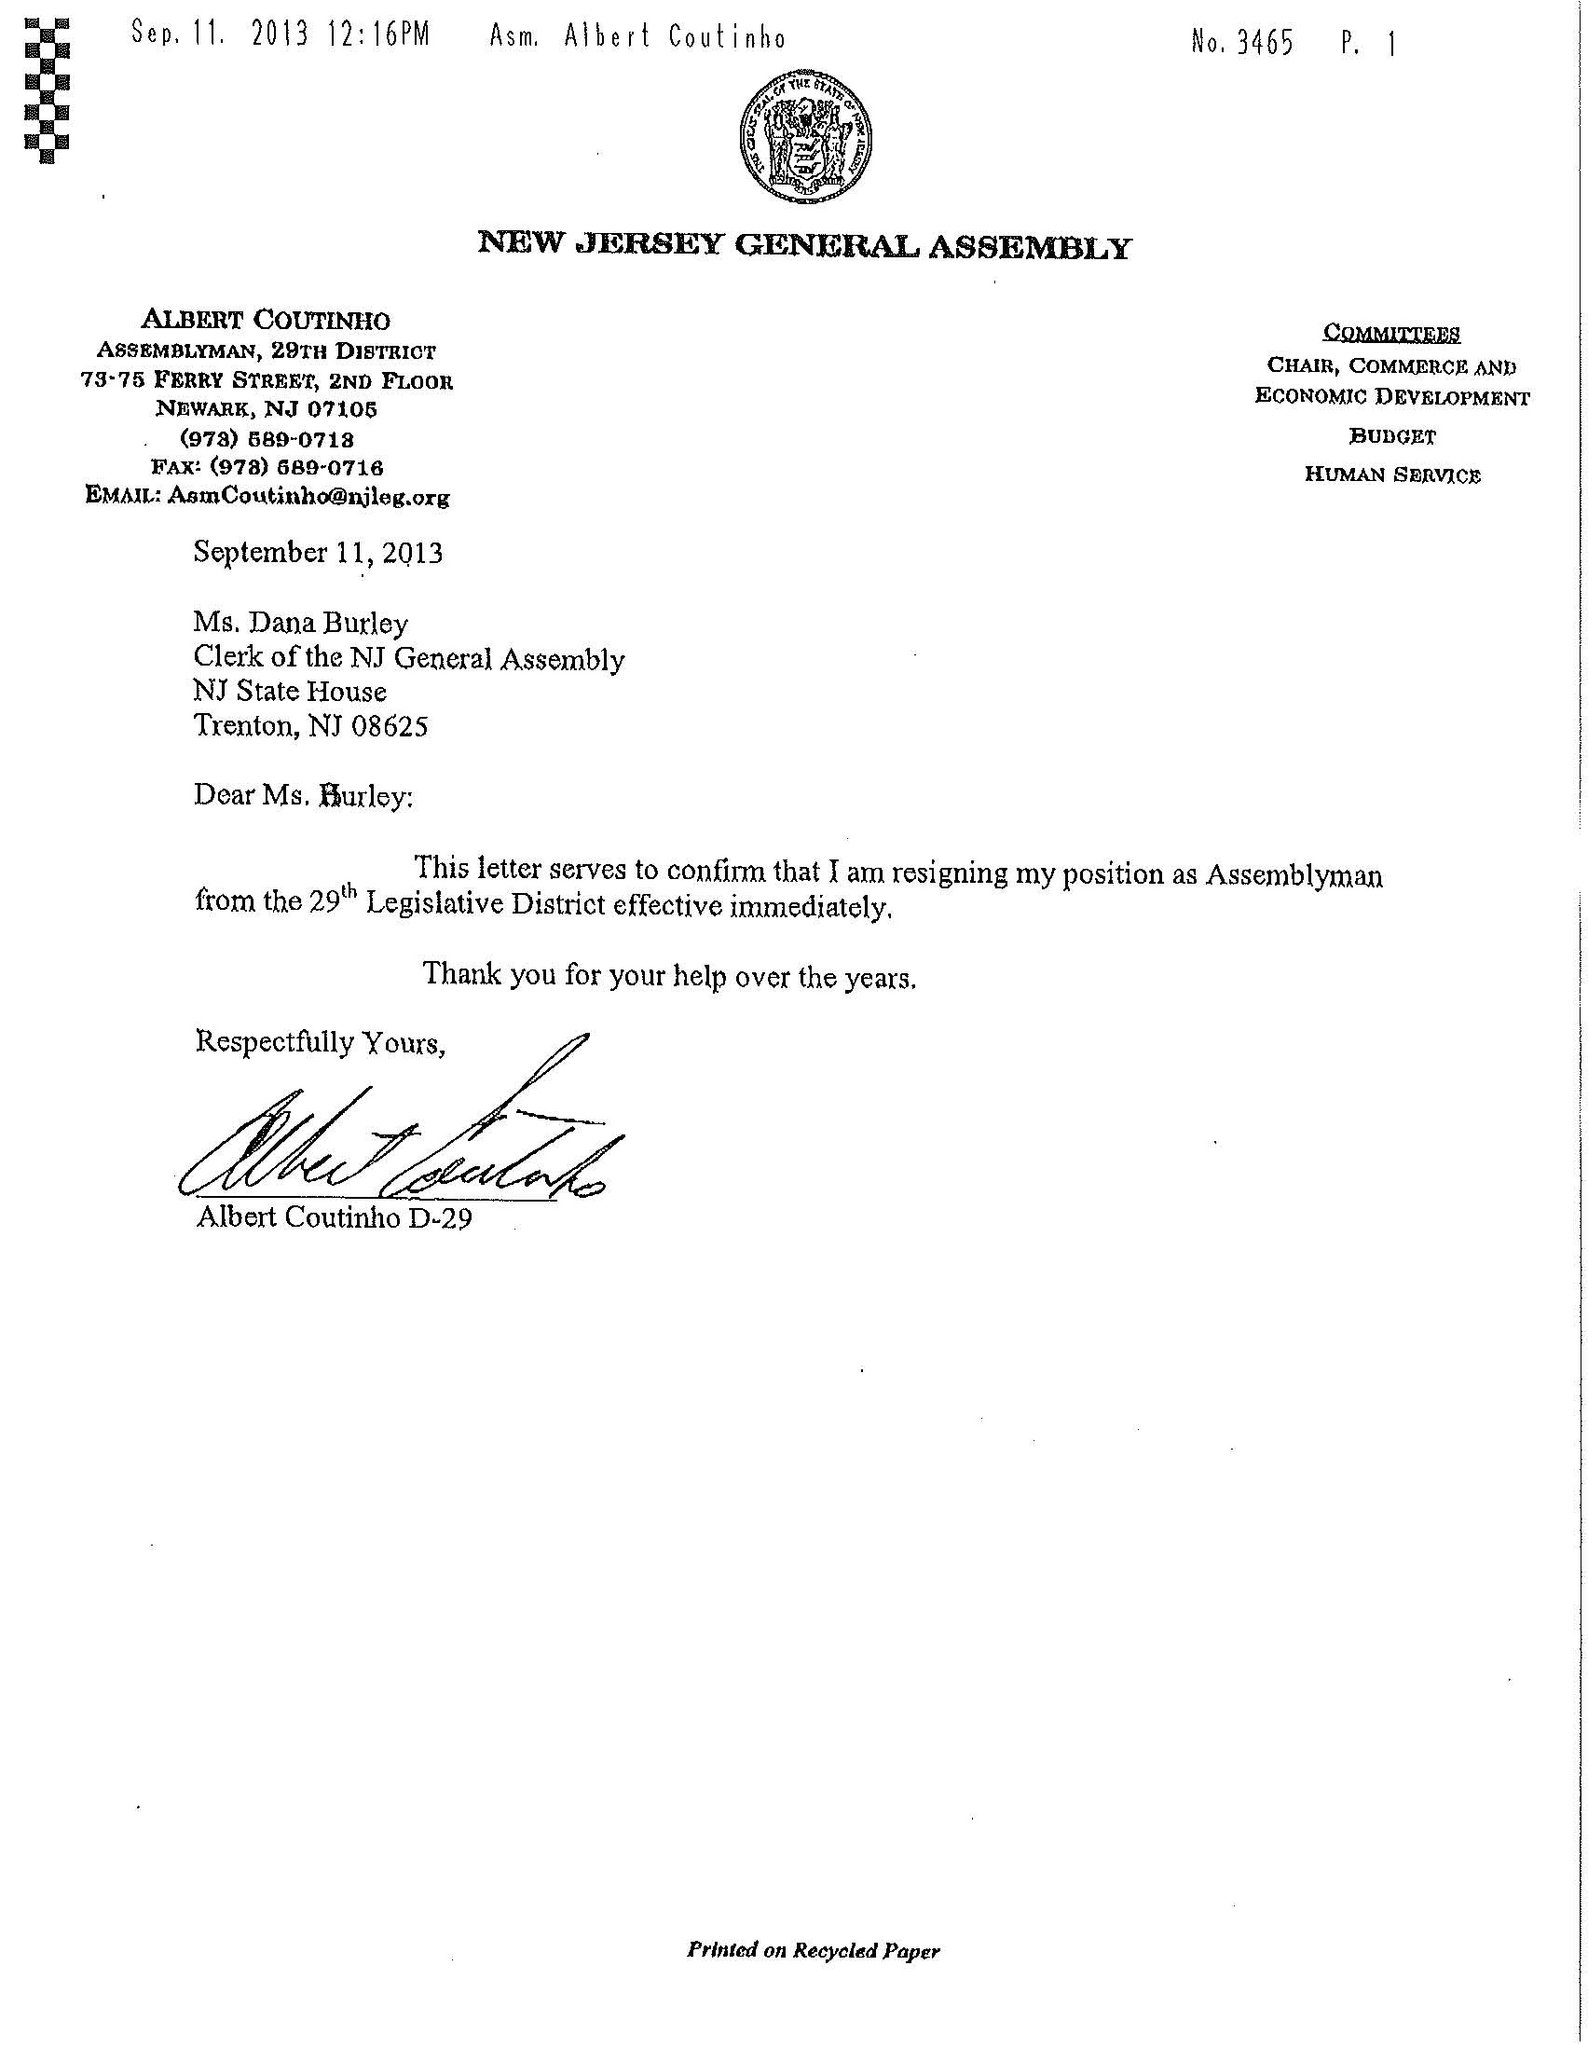 Sample Resignation Letter With Reason Effective Immediately Coutinho Resigns Abruptly From Assembly Amid Probe; Dems